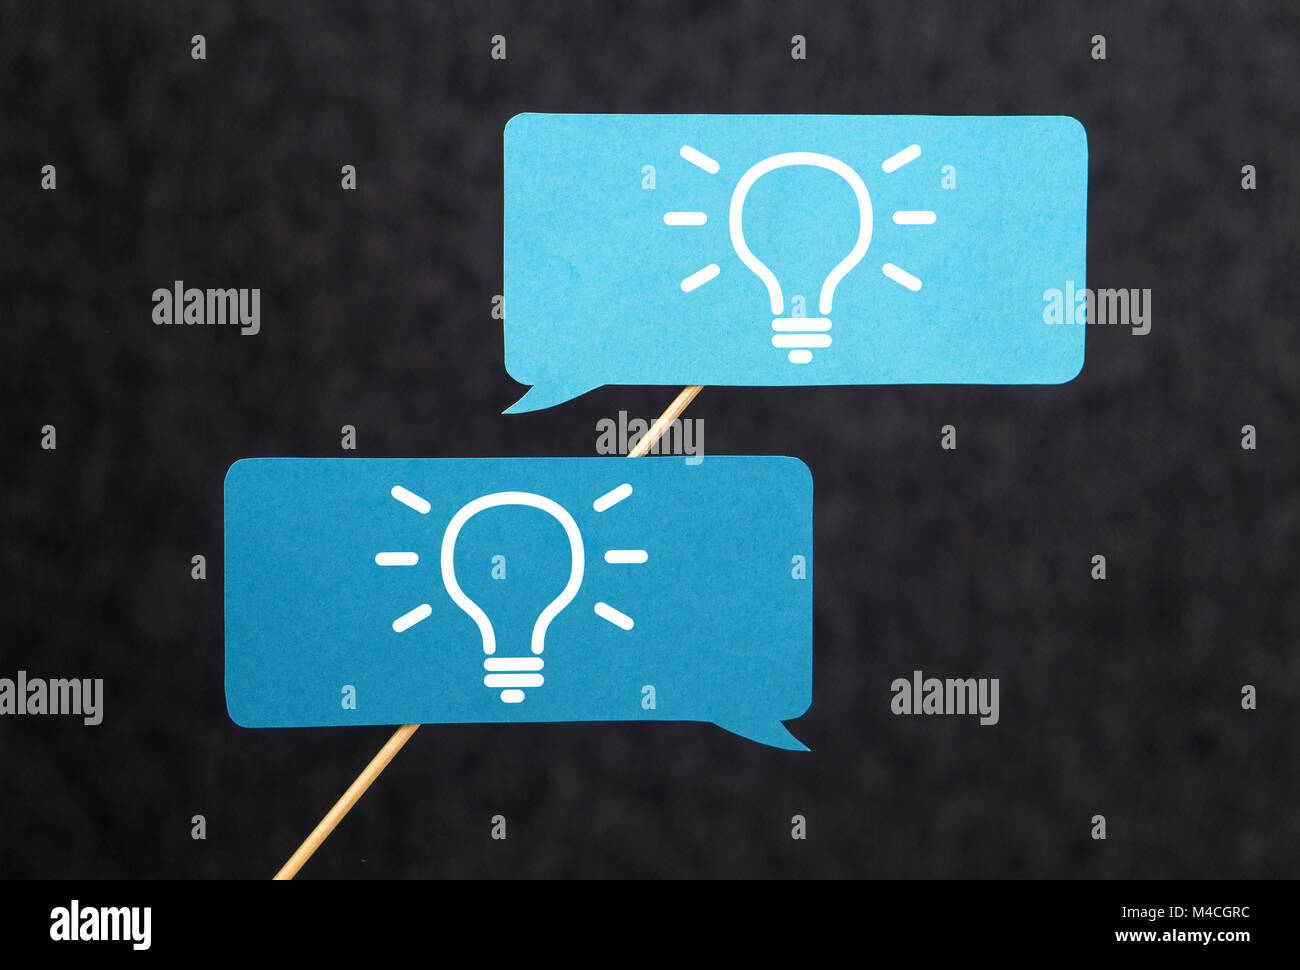 Innovation, brainstorm, inspiration and teamwork concept. Come up with new innovative and creative ideas together - Stock Image